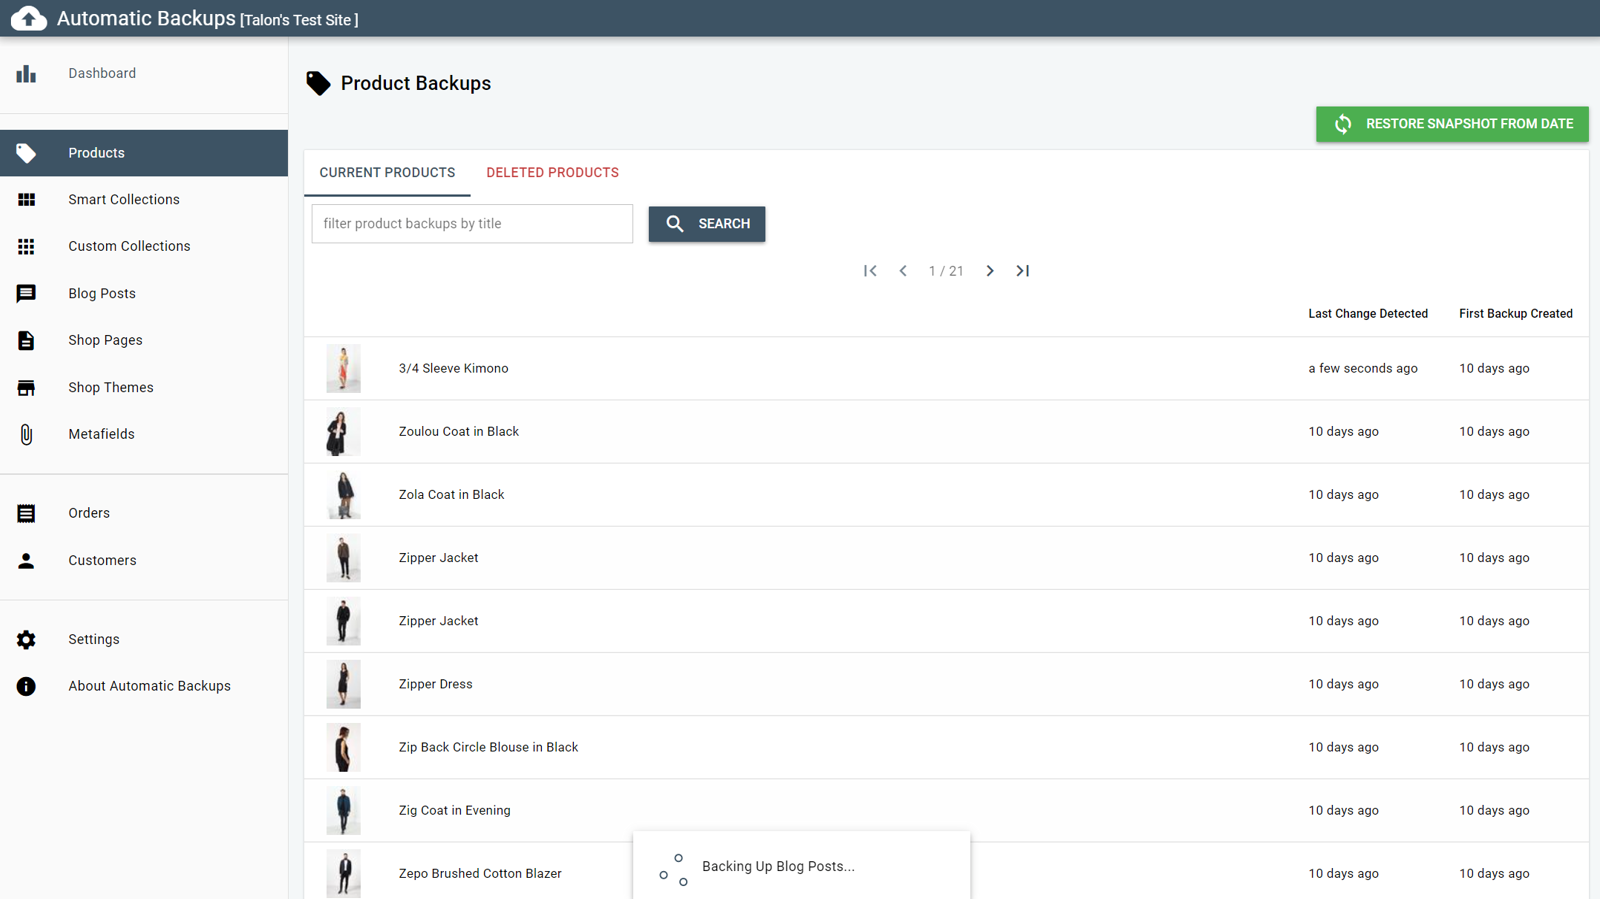 List restorable and deleted records.